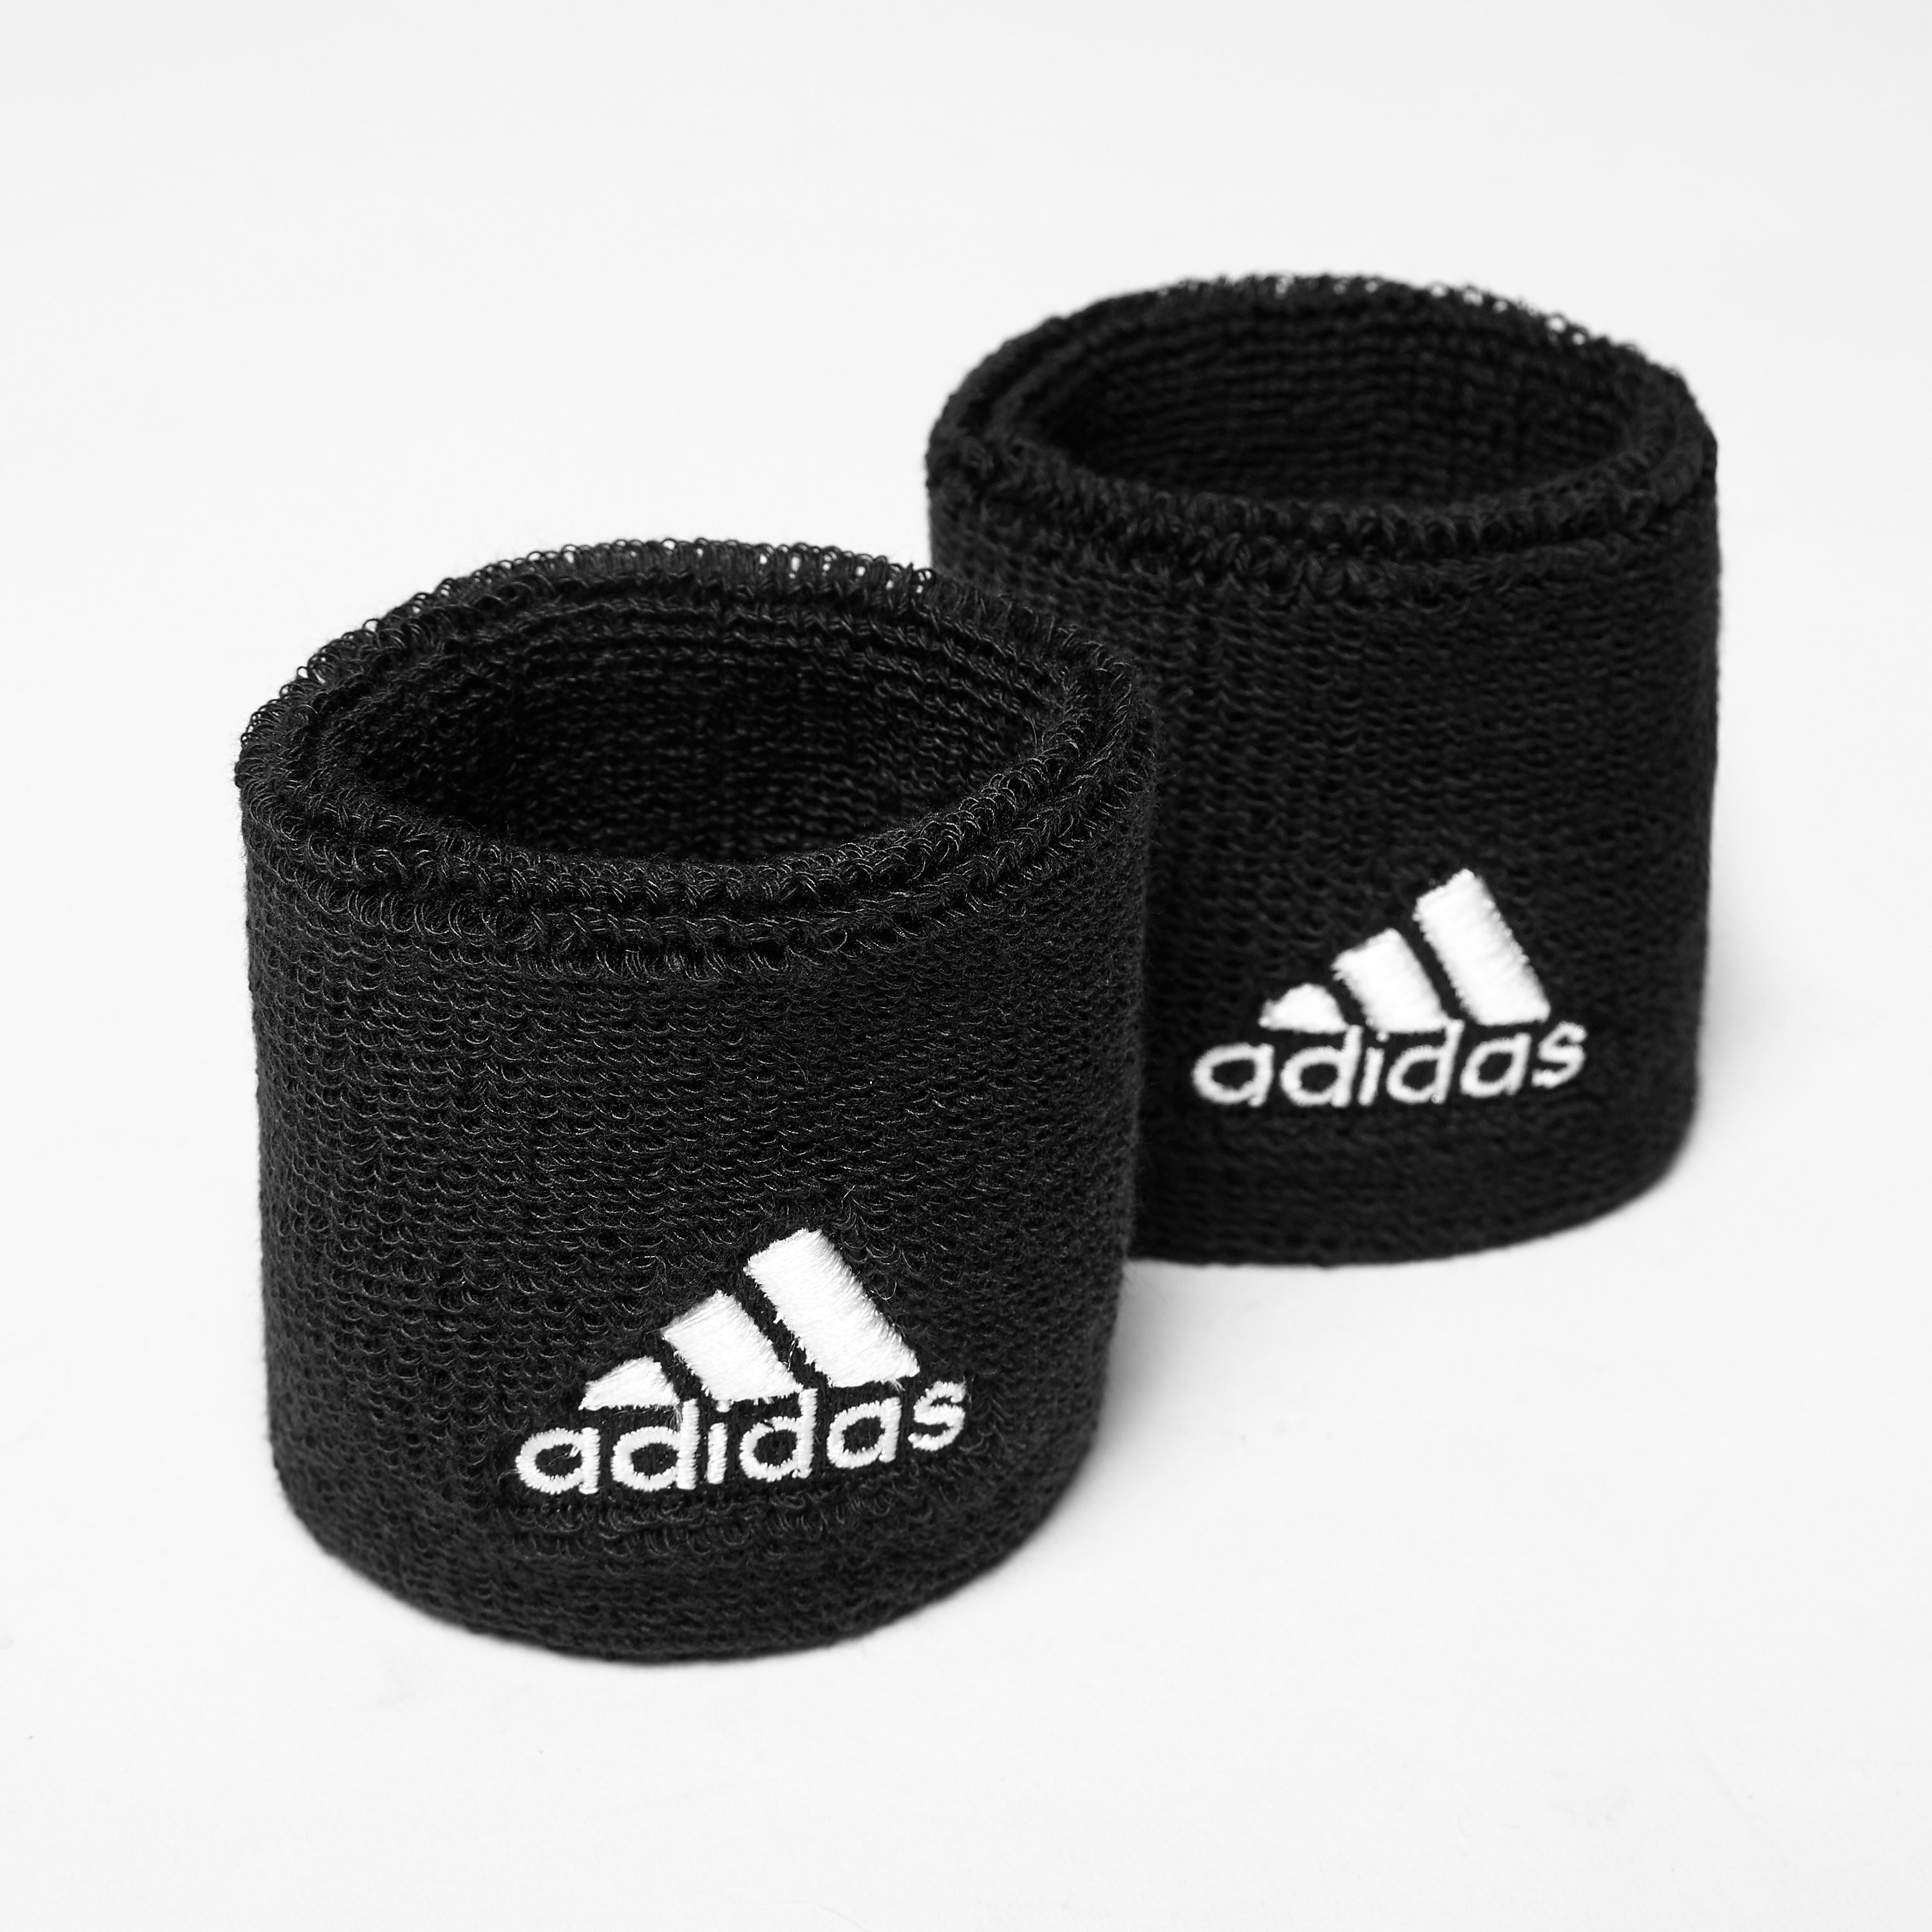 adidas Tennis Small Wristbands